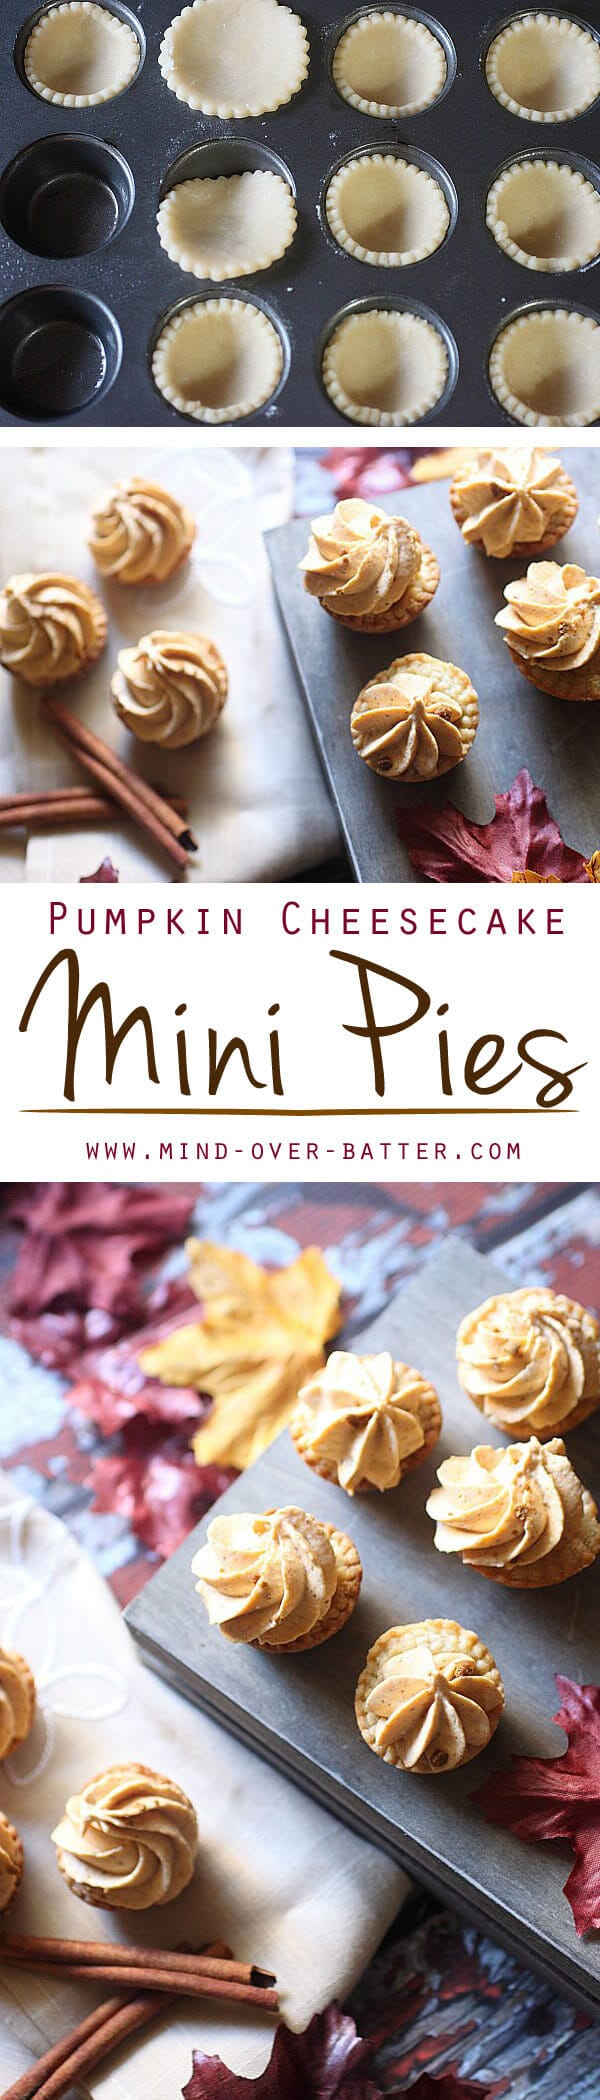 A flaky, buttery pie dough is piled high with a pillow soft pumpkin cream cheese filling. These Pumpkin Cheesecake Mini Pies are packed with pumpkin spice! Pumpkin Cheesecake Mini Pies {Easy Pumpkin Spice Dessert Recipe}